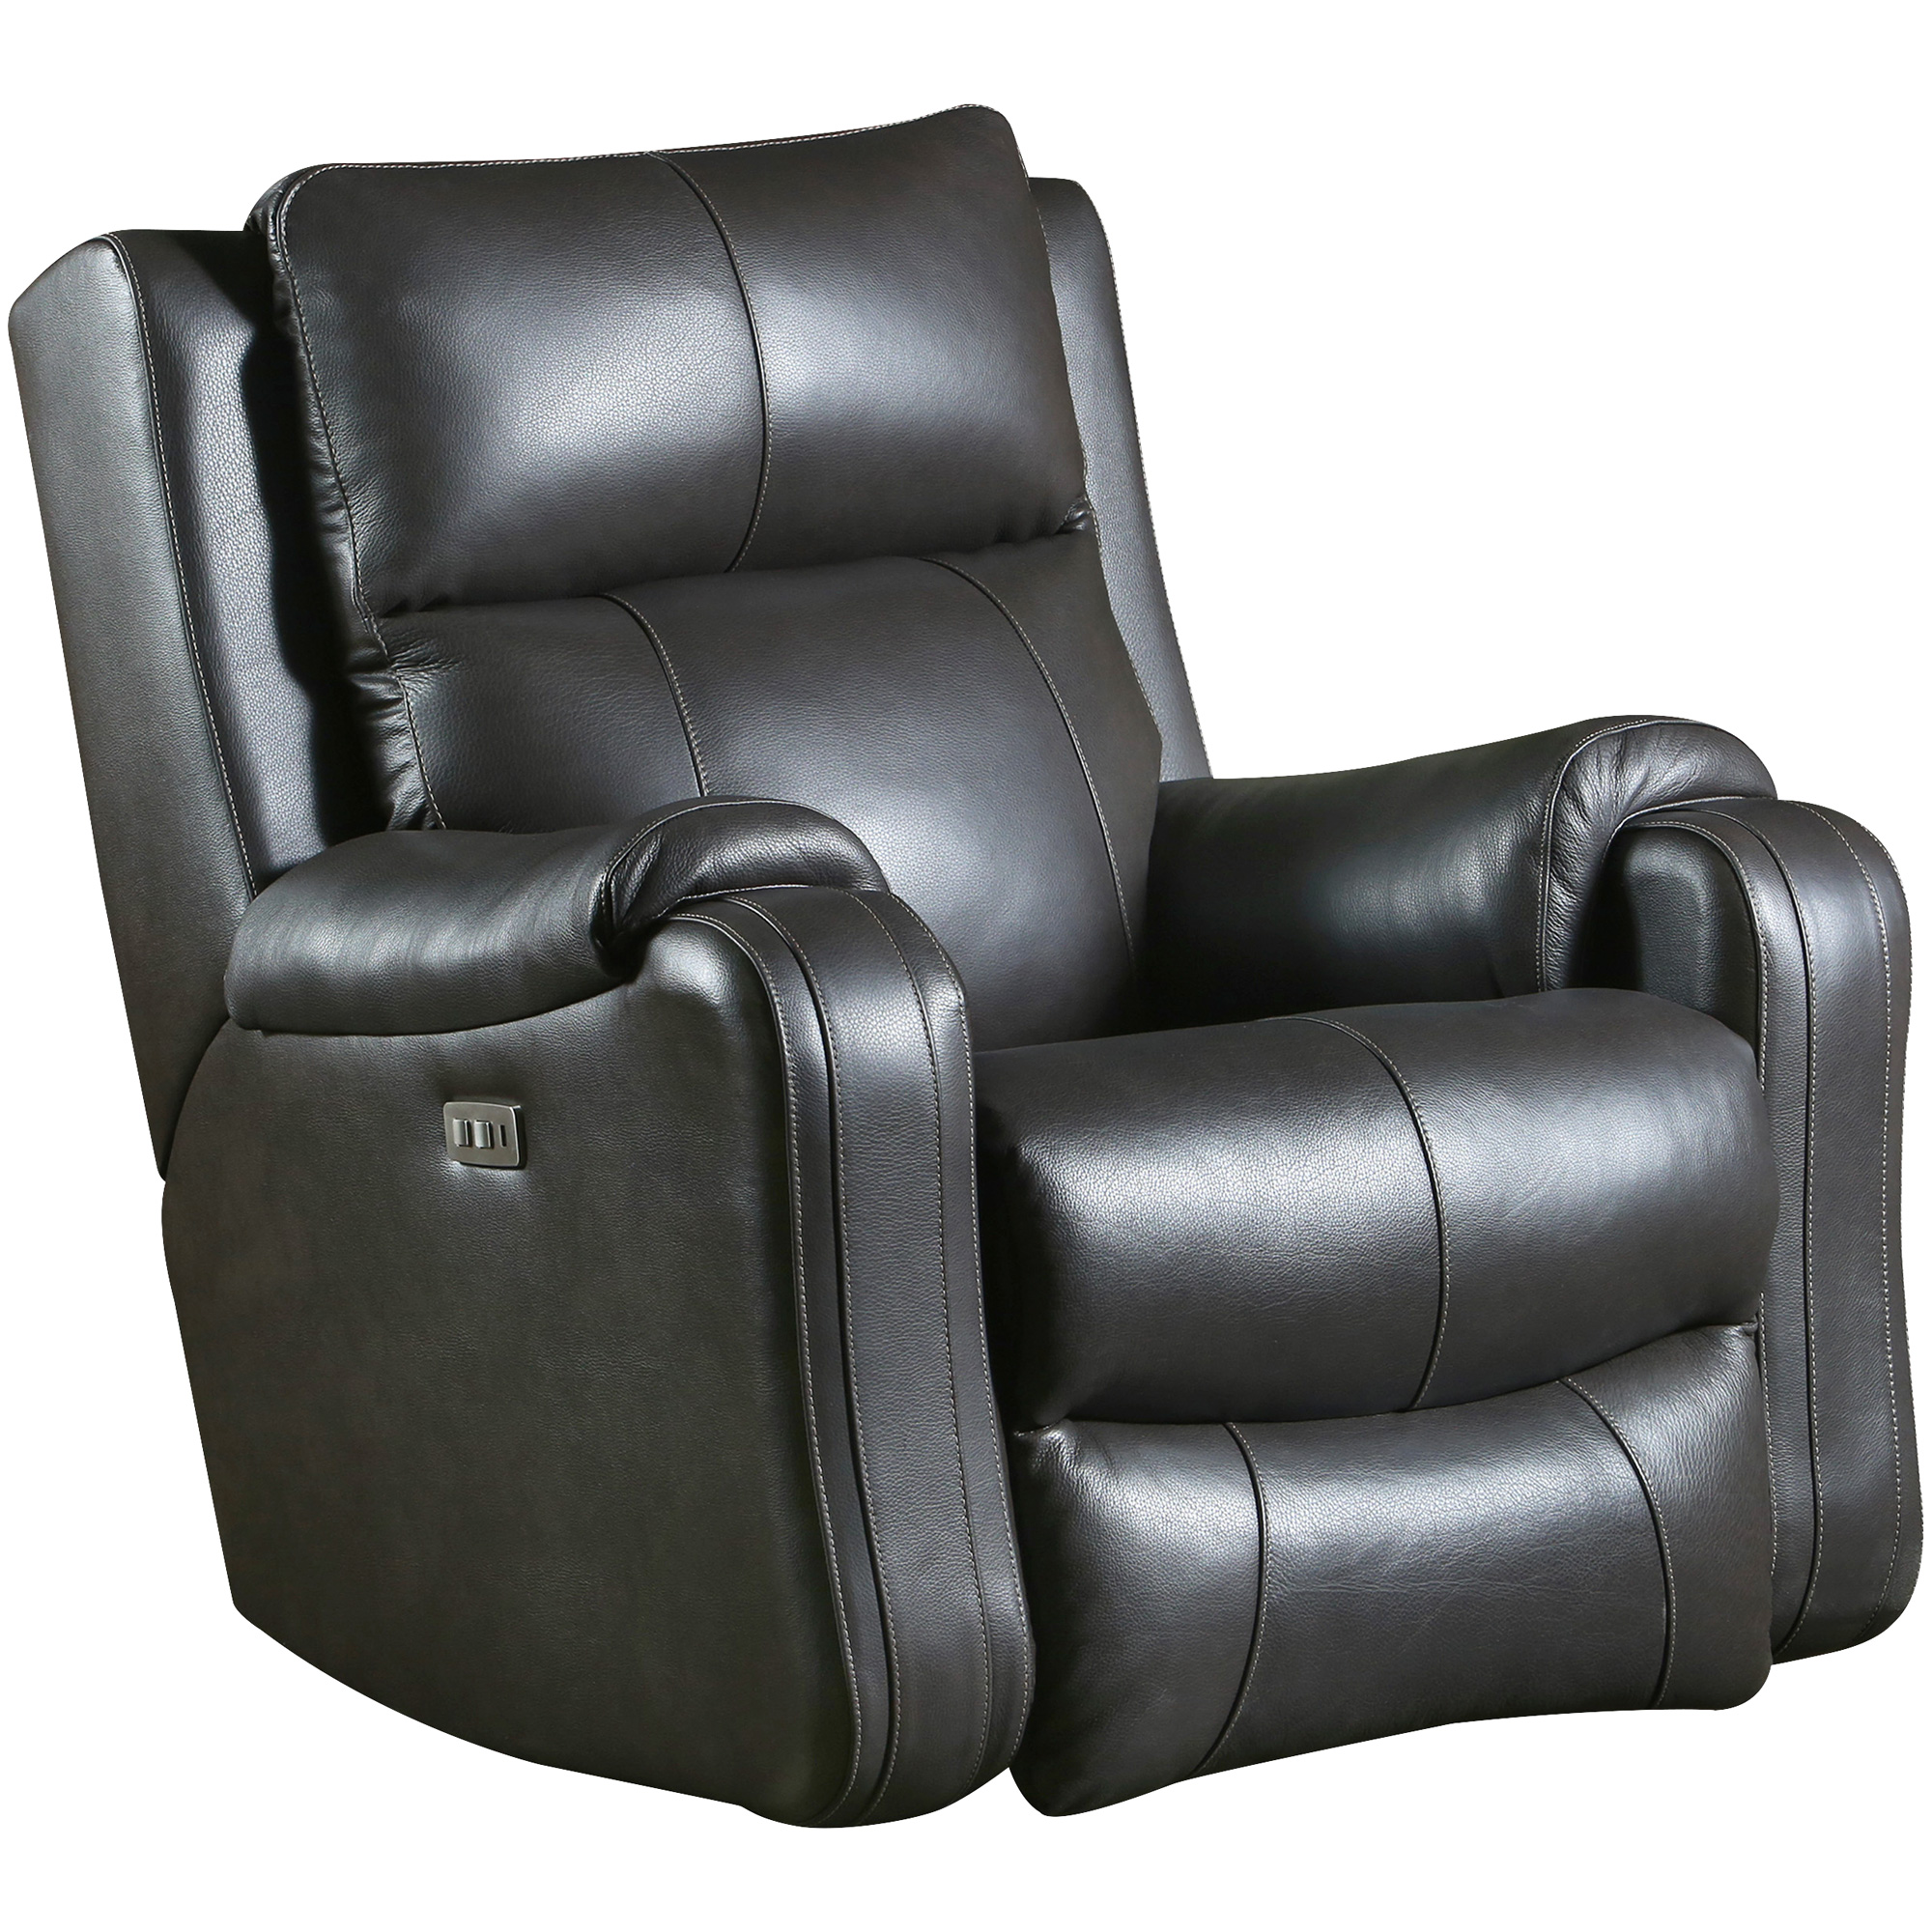 Southern Motion | Contour Leather Fossil Power+ Next Level Recliner Chair